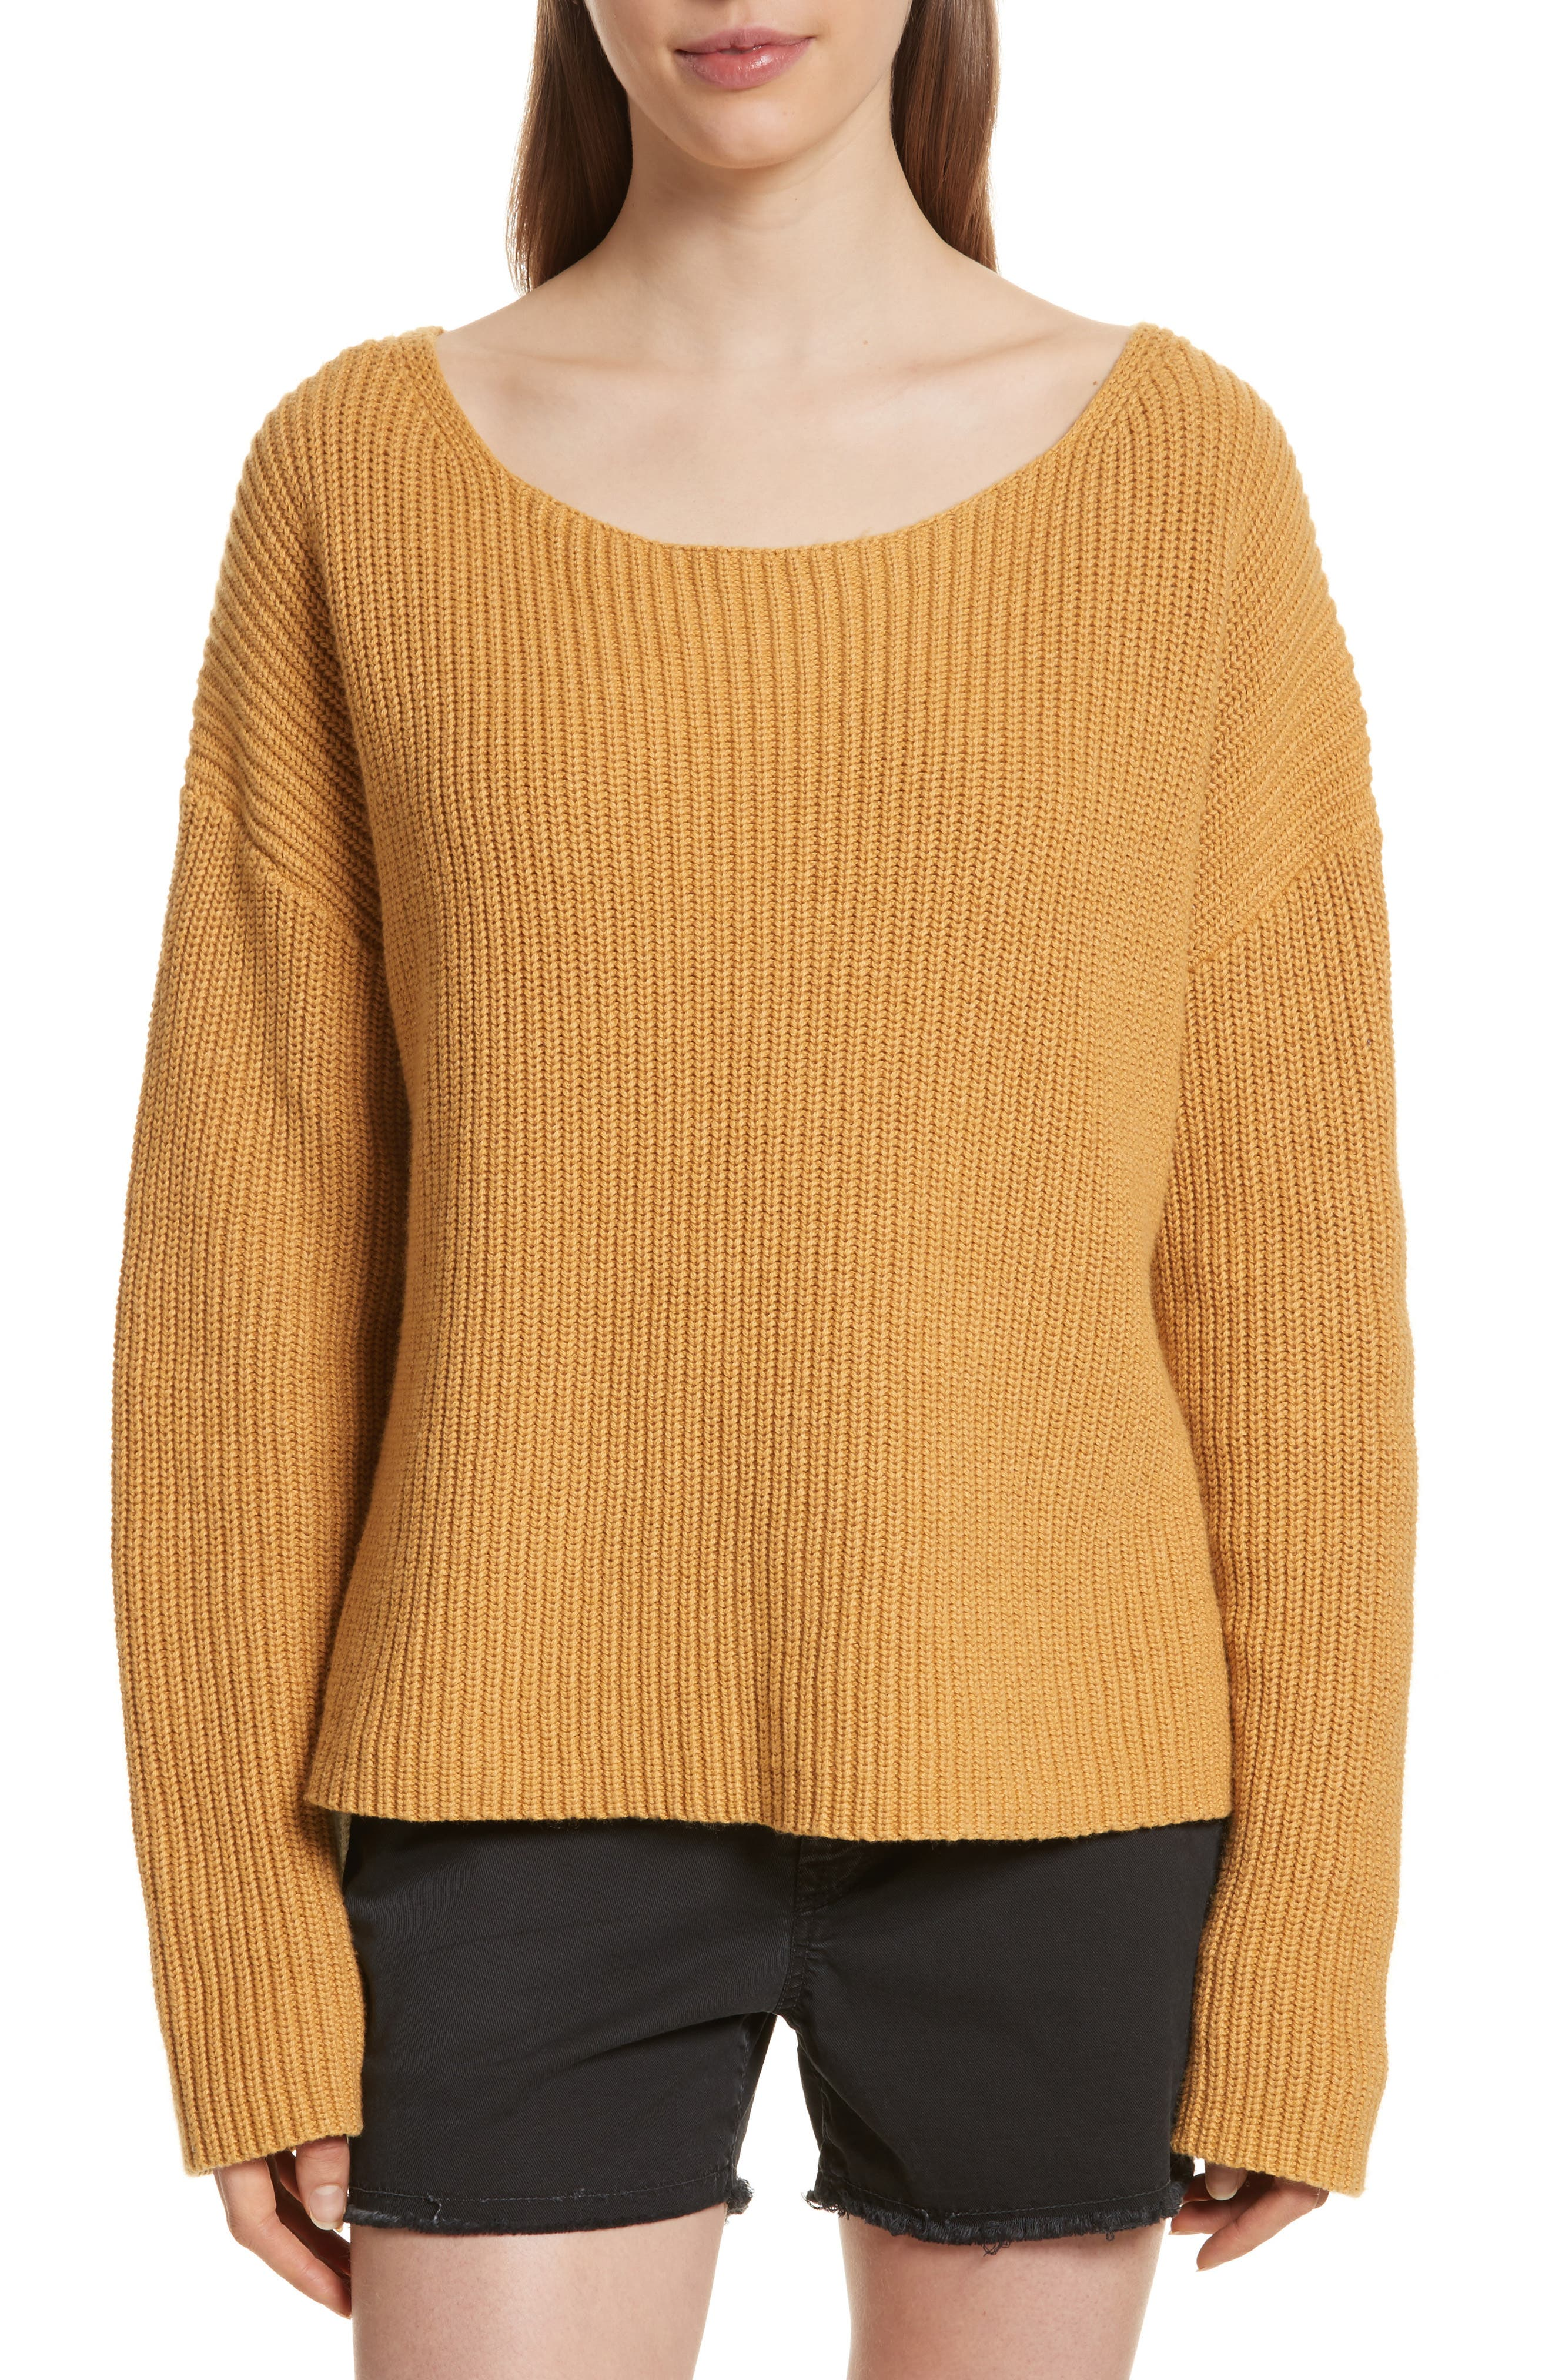 Martindale Ribbed Cotton, Cashmere & Silk Sweater,                         Main,                         color, Mustard